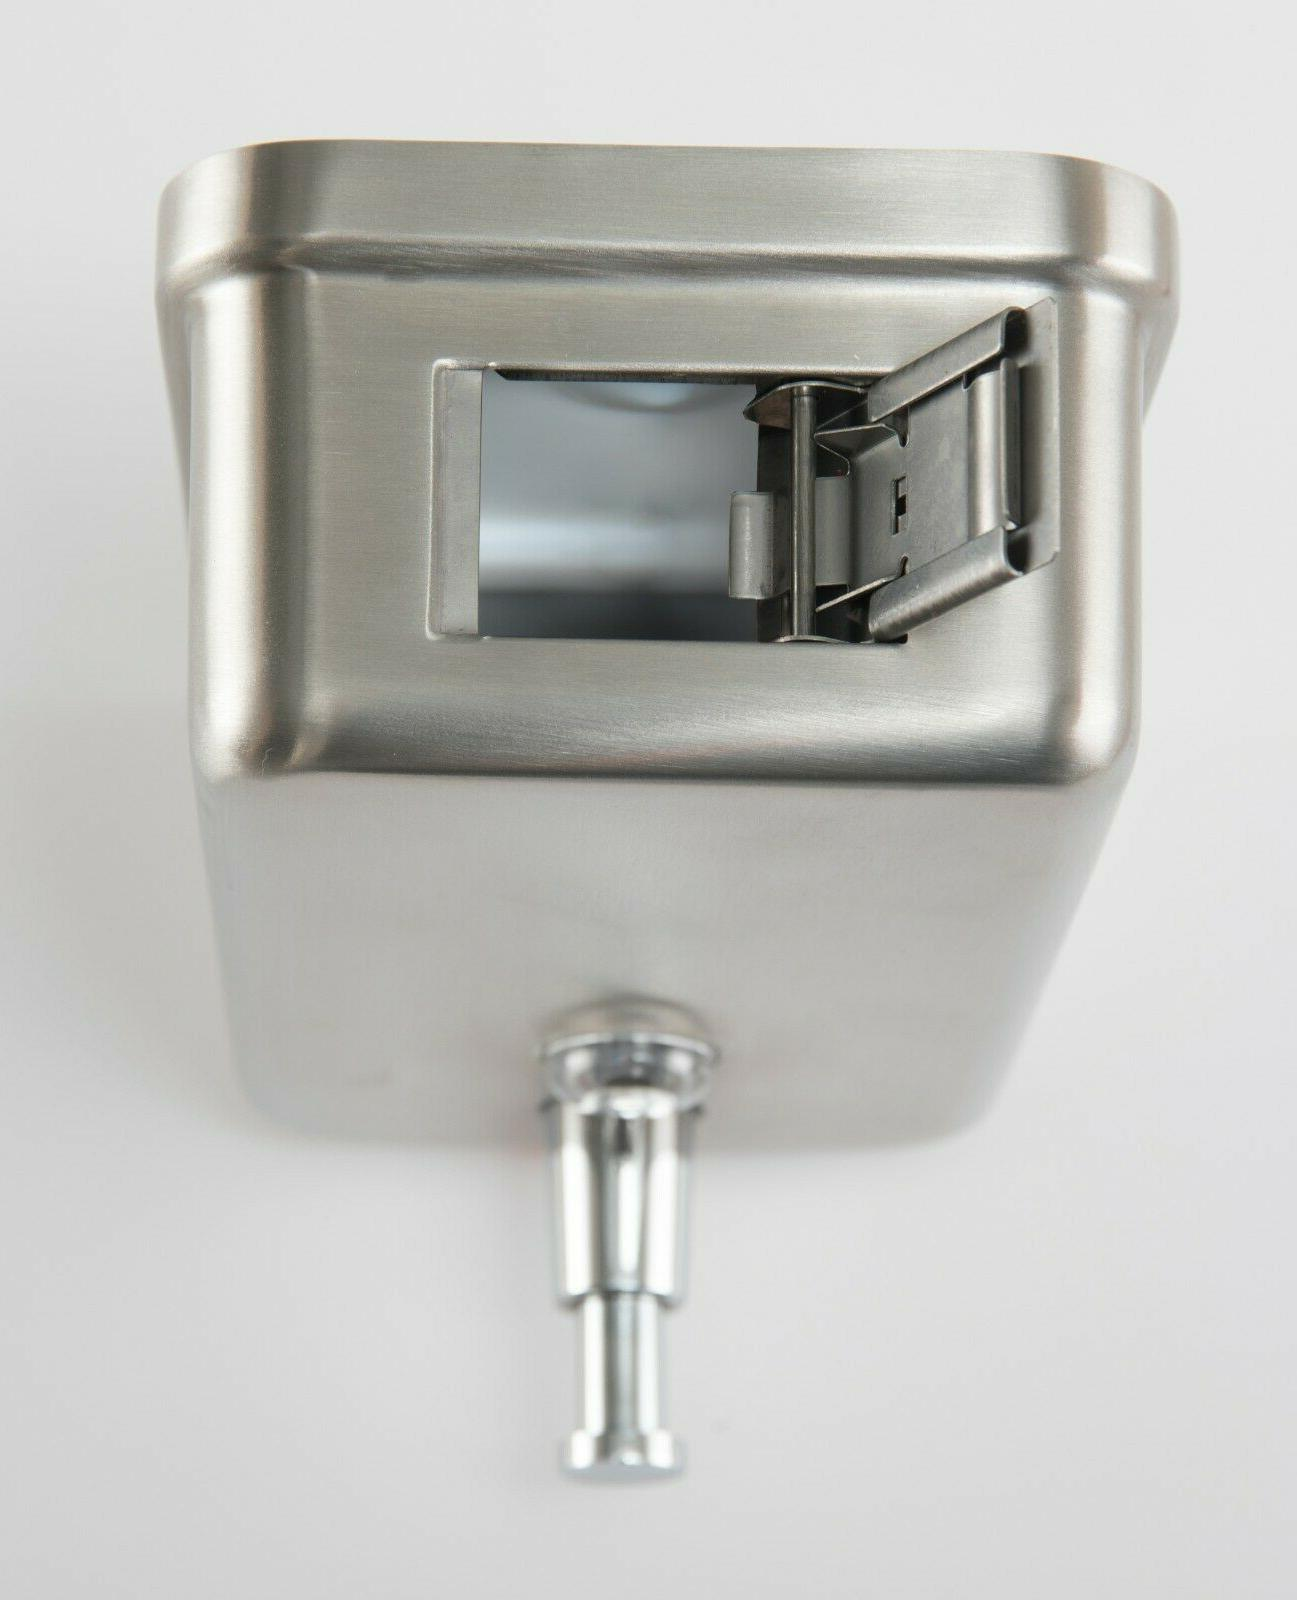 Commercial Soap Mount - Stainless Steel - Superior